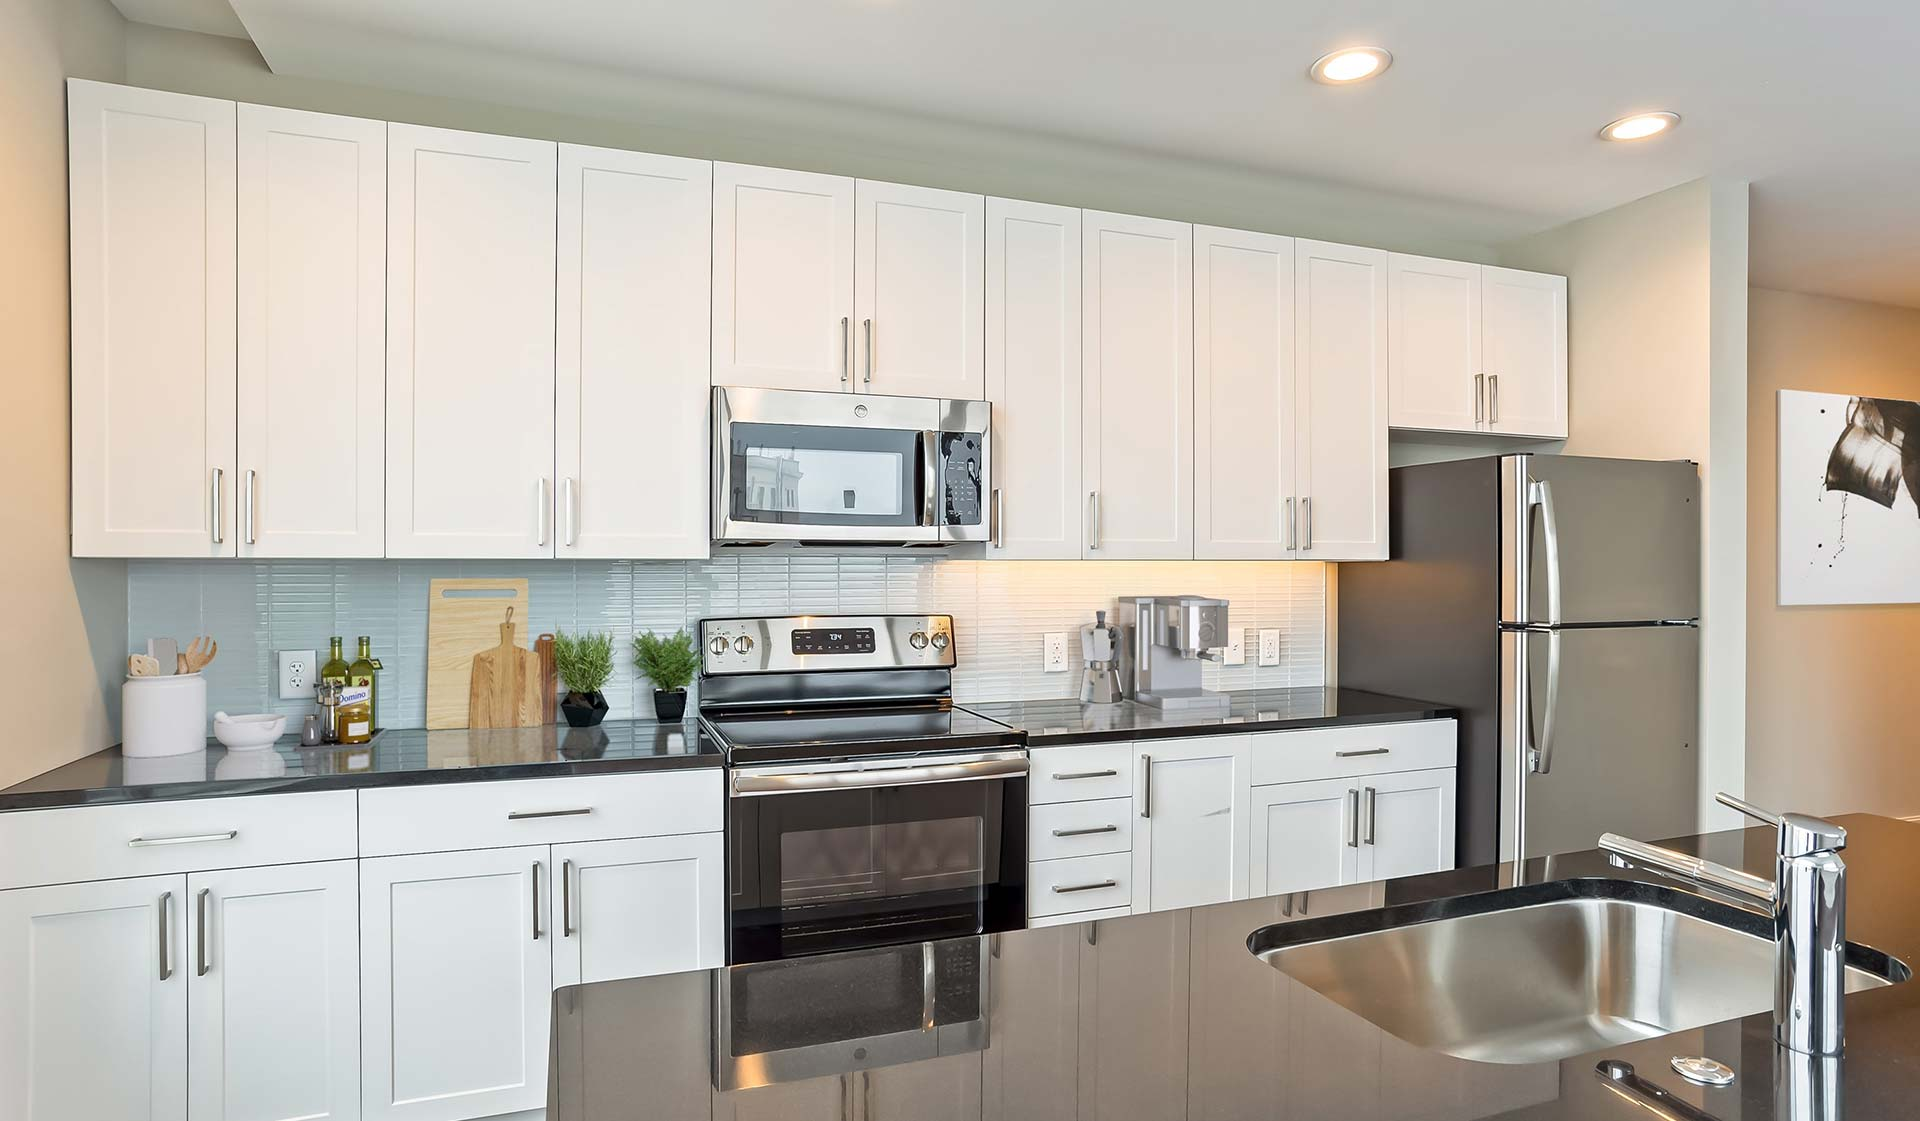 One Ardmore Apartment Homes - Ardmore, PA - Interior Kitchen